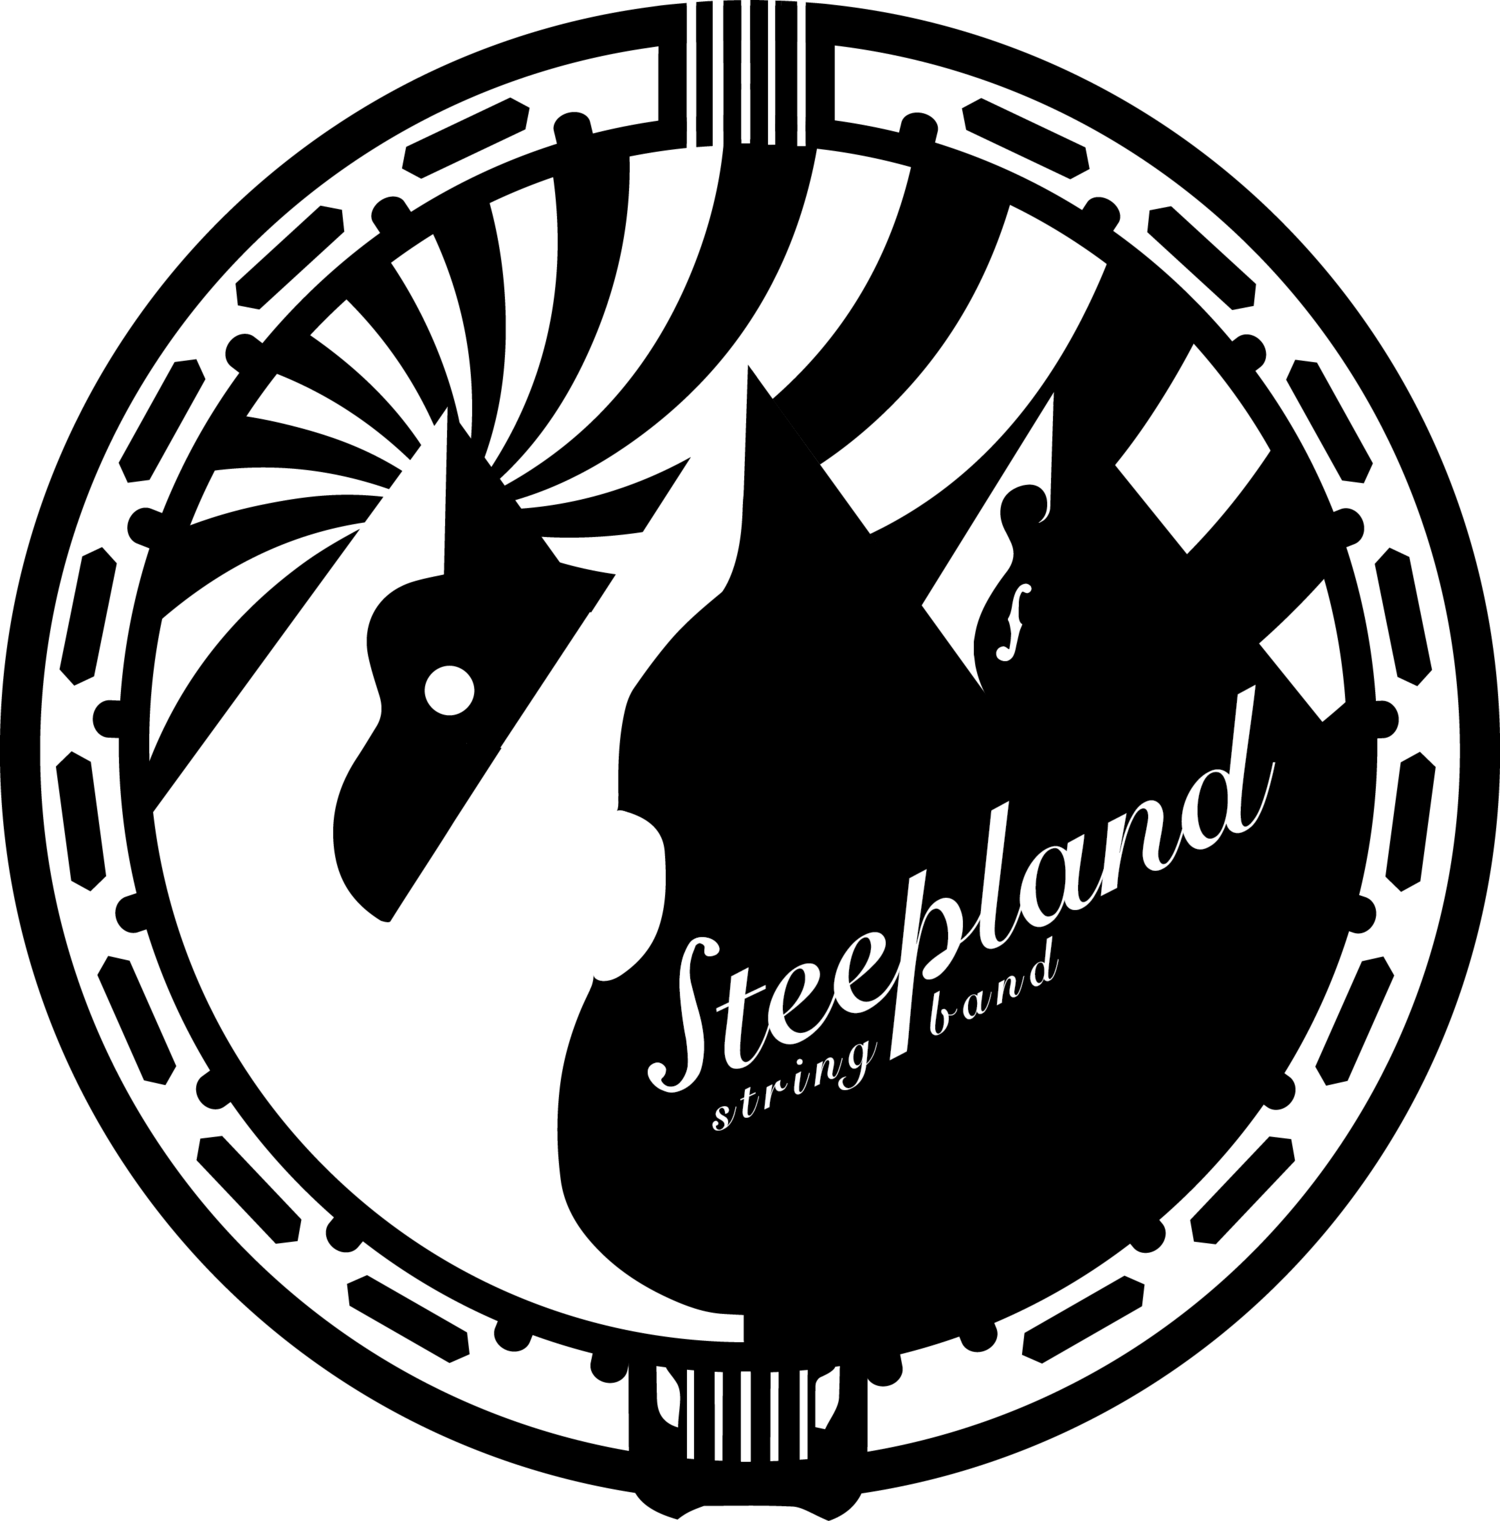 Steepland String Band